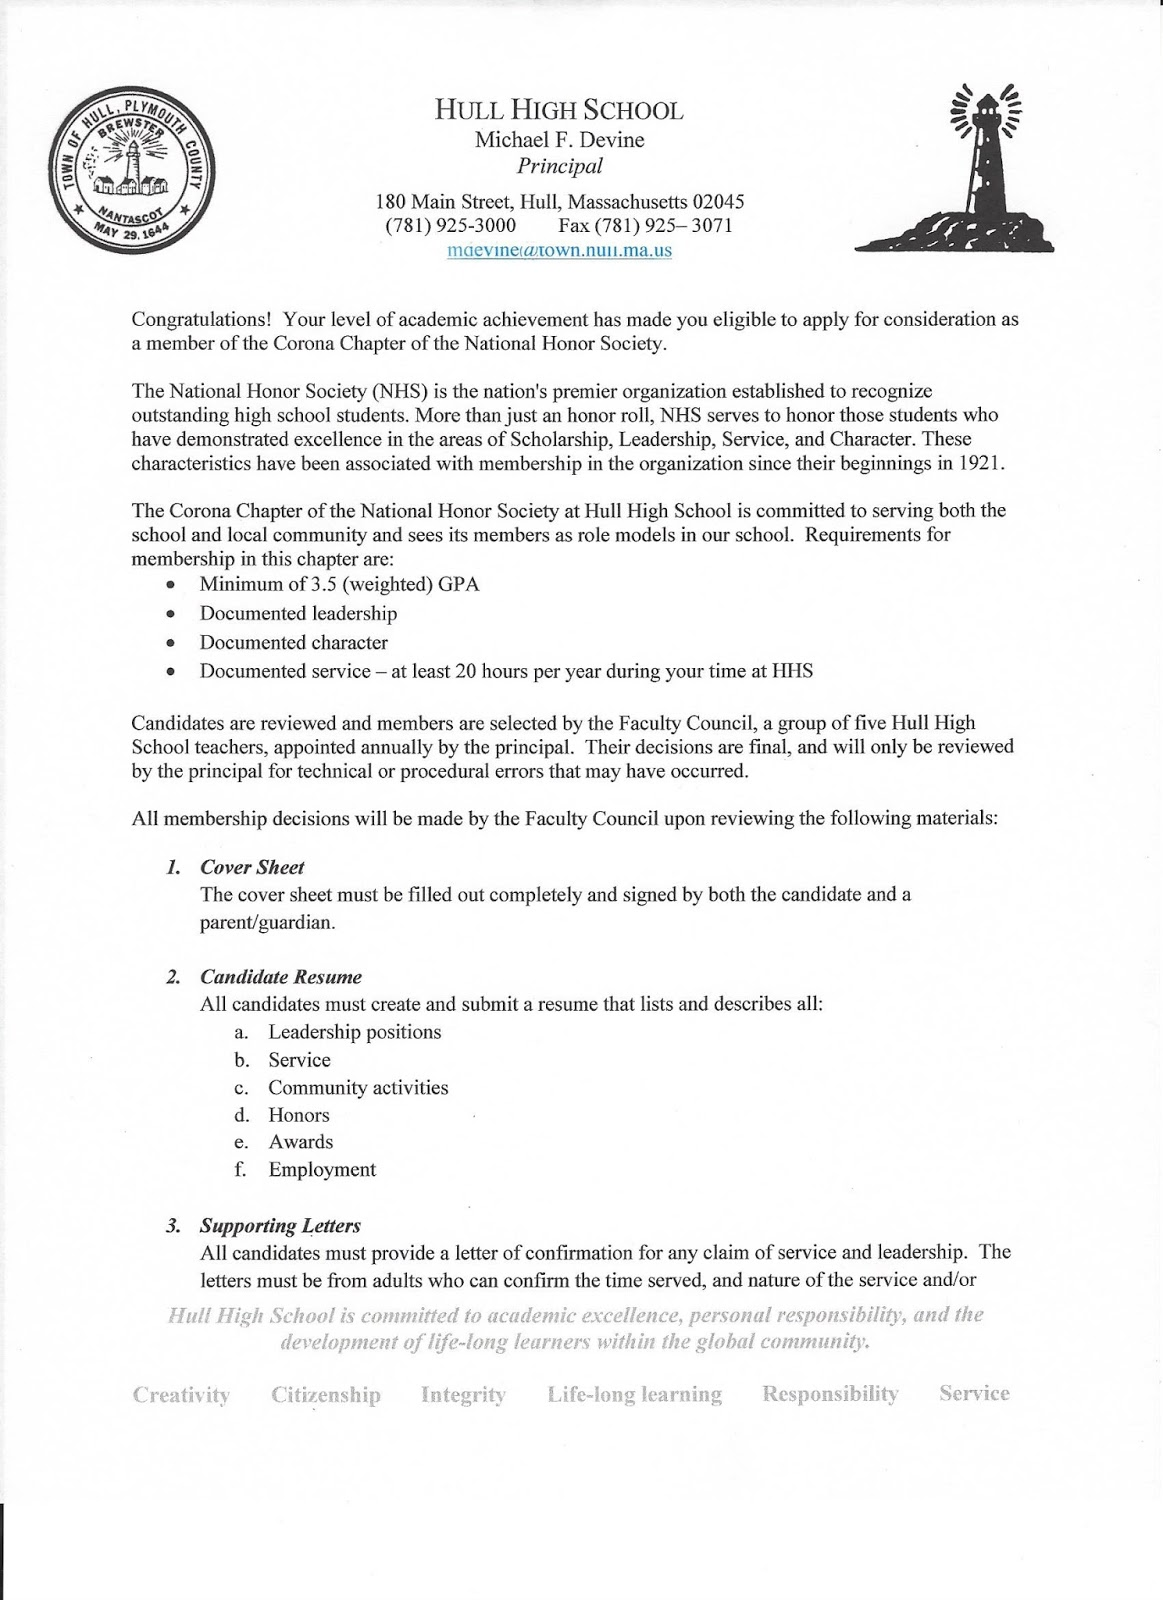 the hull high school blog important national honor society information on resume scan0003 Resume Honor Society On Resume